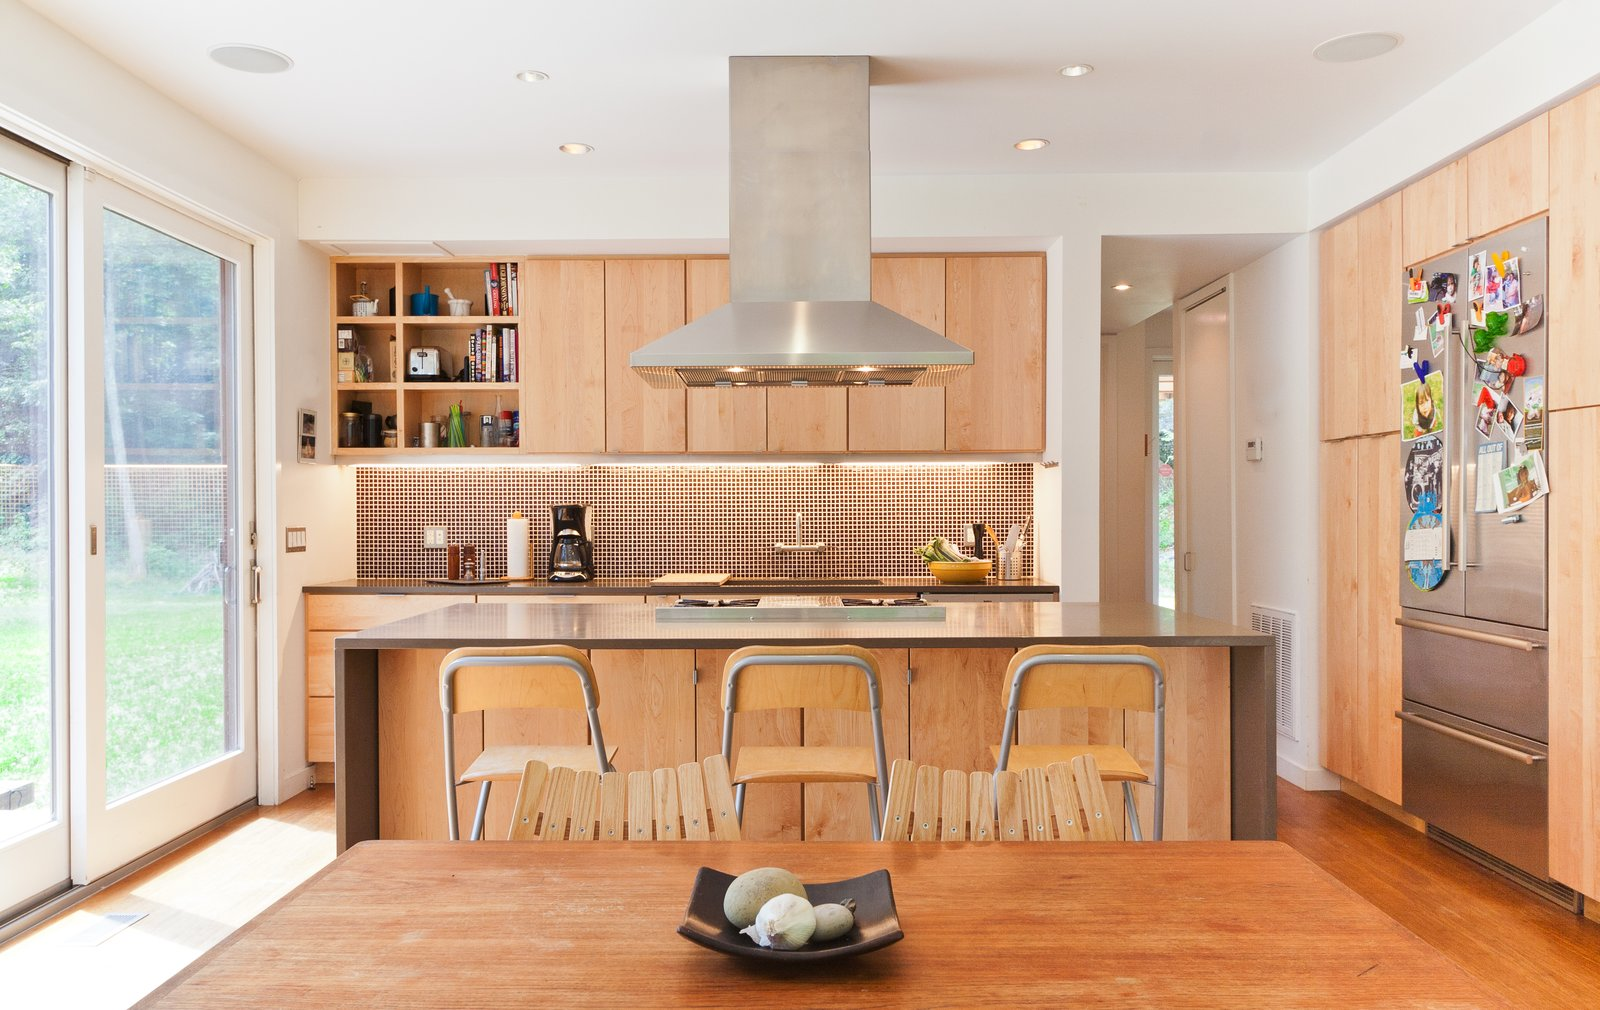 Kitchen, dining, and living occupy one large open space  Catskills Suburban by Resolution: 4 Architecture